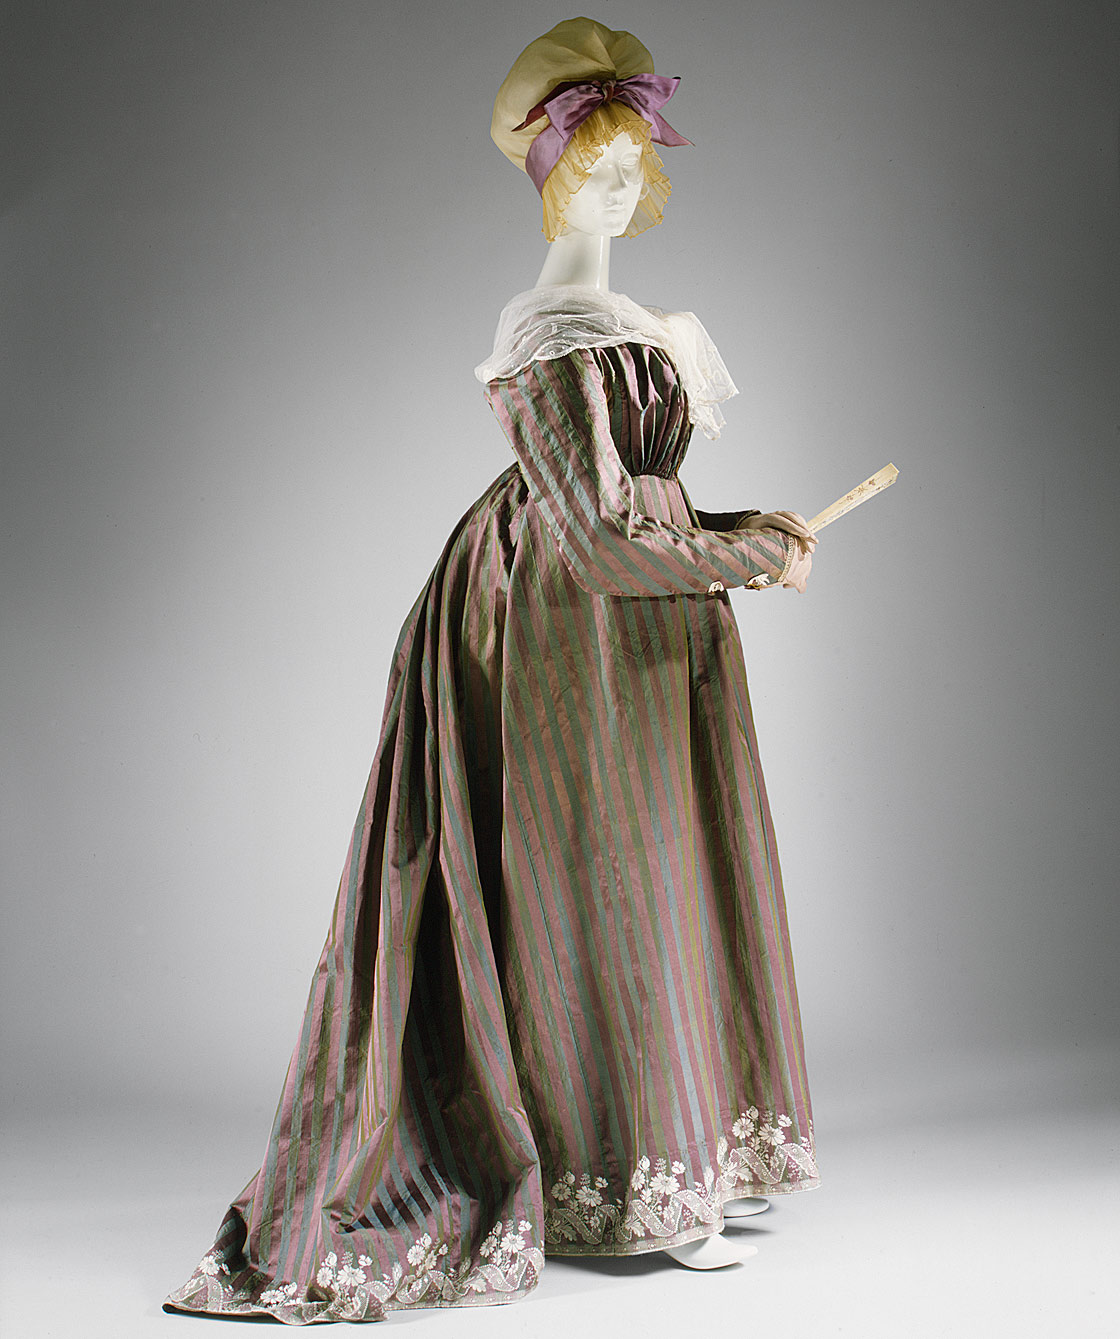 essays on victorian fashion Victorian periodicals observed the fashion seasons, changes in feminine and masculine status, and distinctions between generations, as well as perpetuated the rituals of dress for christening, coming of age, weddings, funerals and mourning.